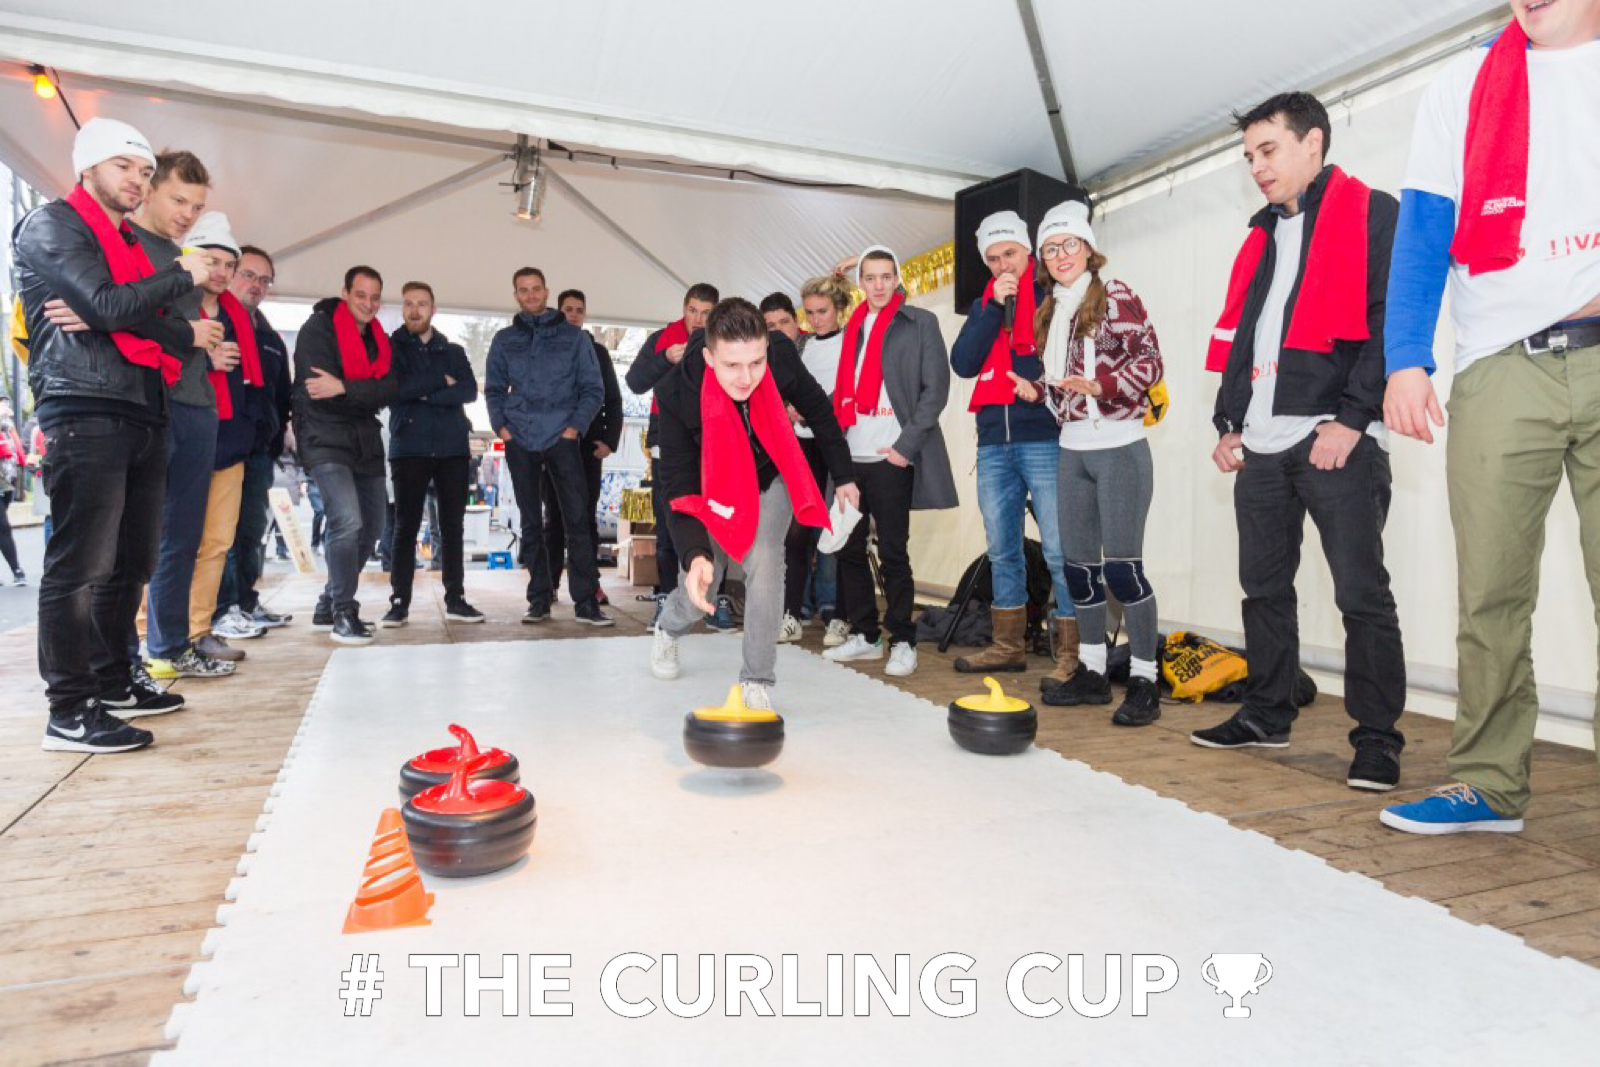 The Curling Cup - Waikato Xmas Party Ideas